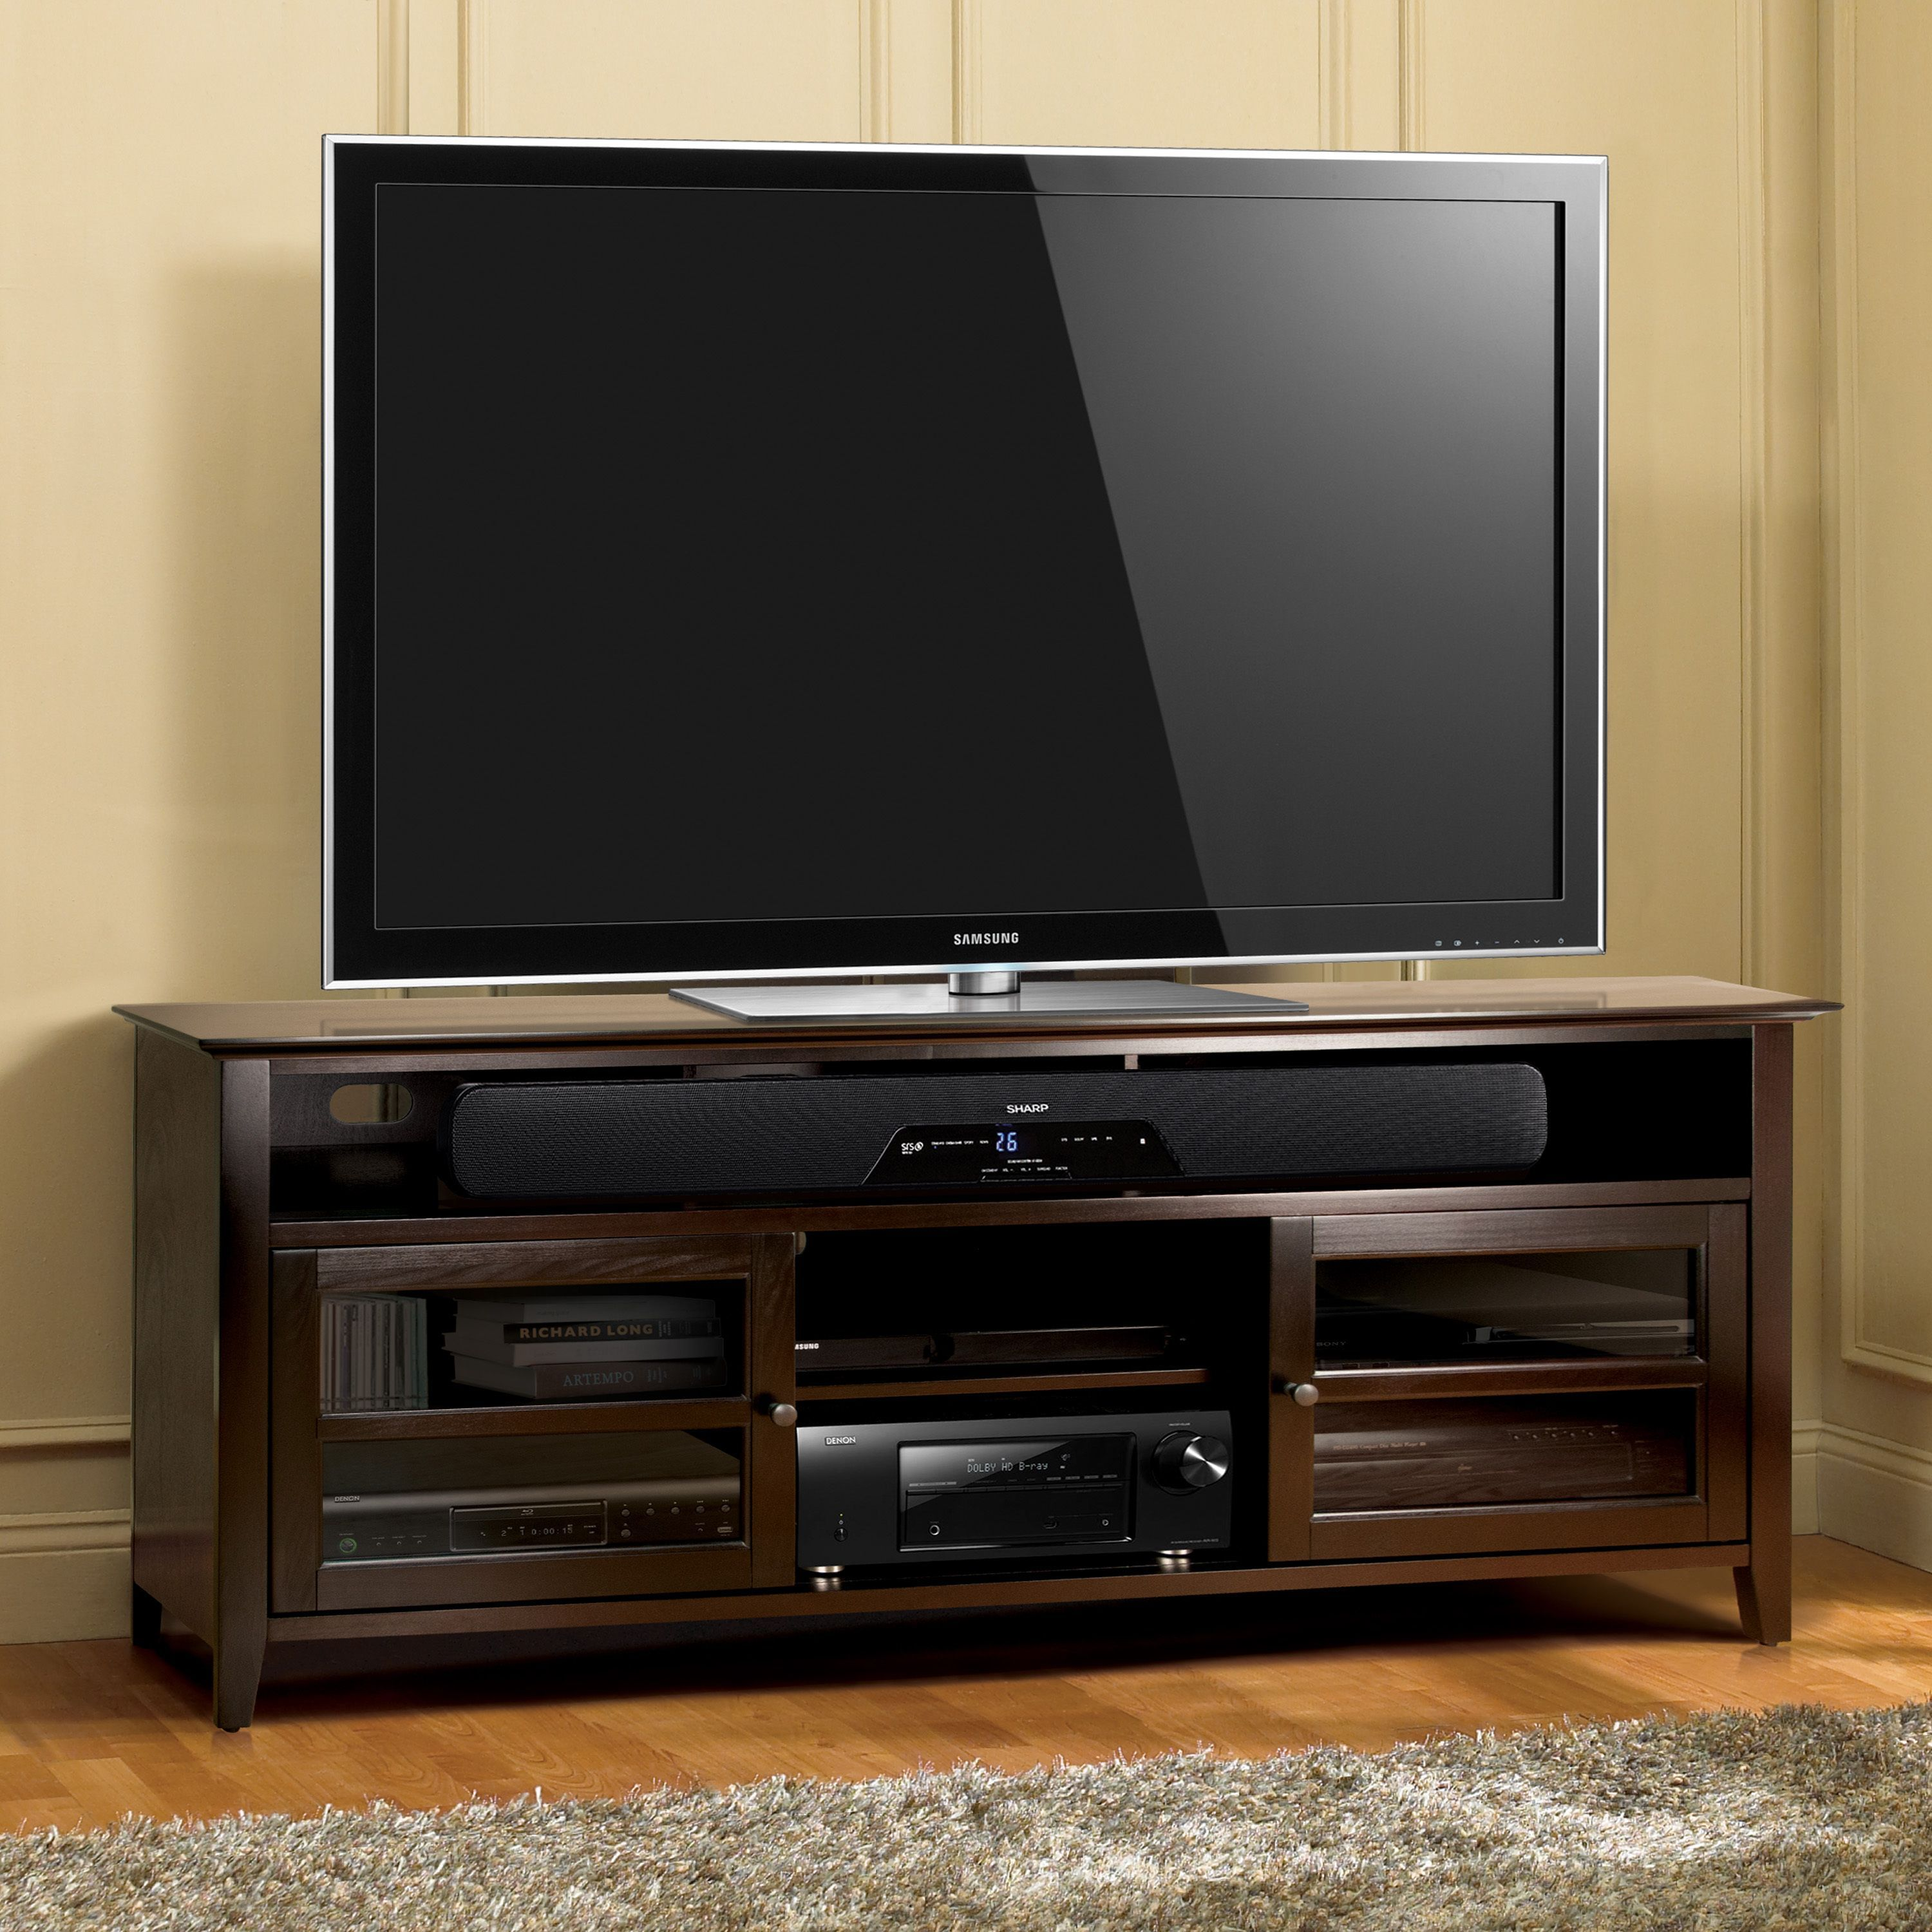 Bell O Wavs99175 75 Inch Dark Espresso Tv Stand For Tvs Up To 80